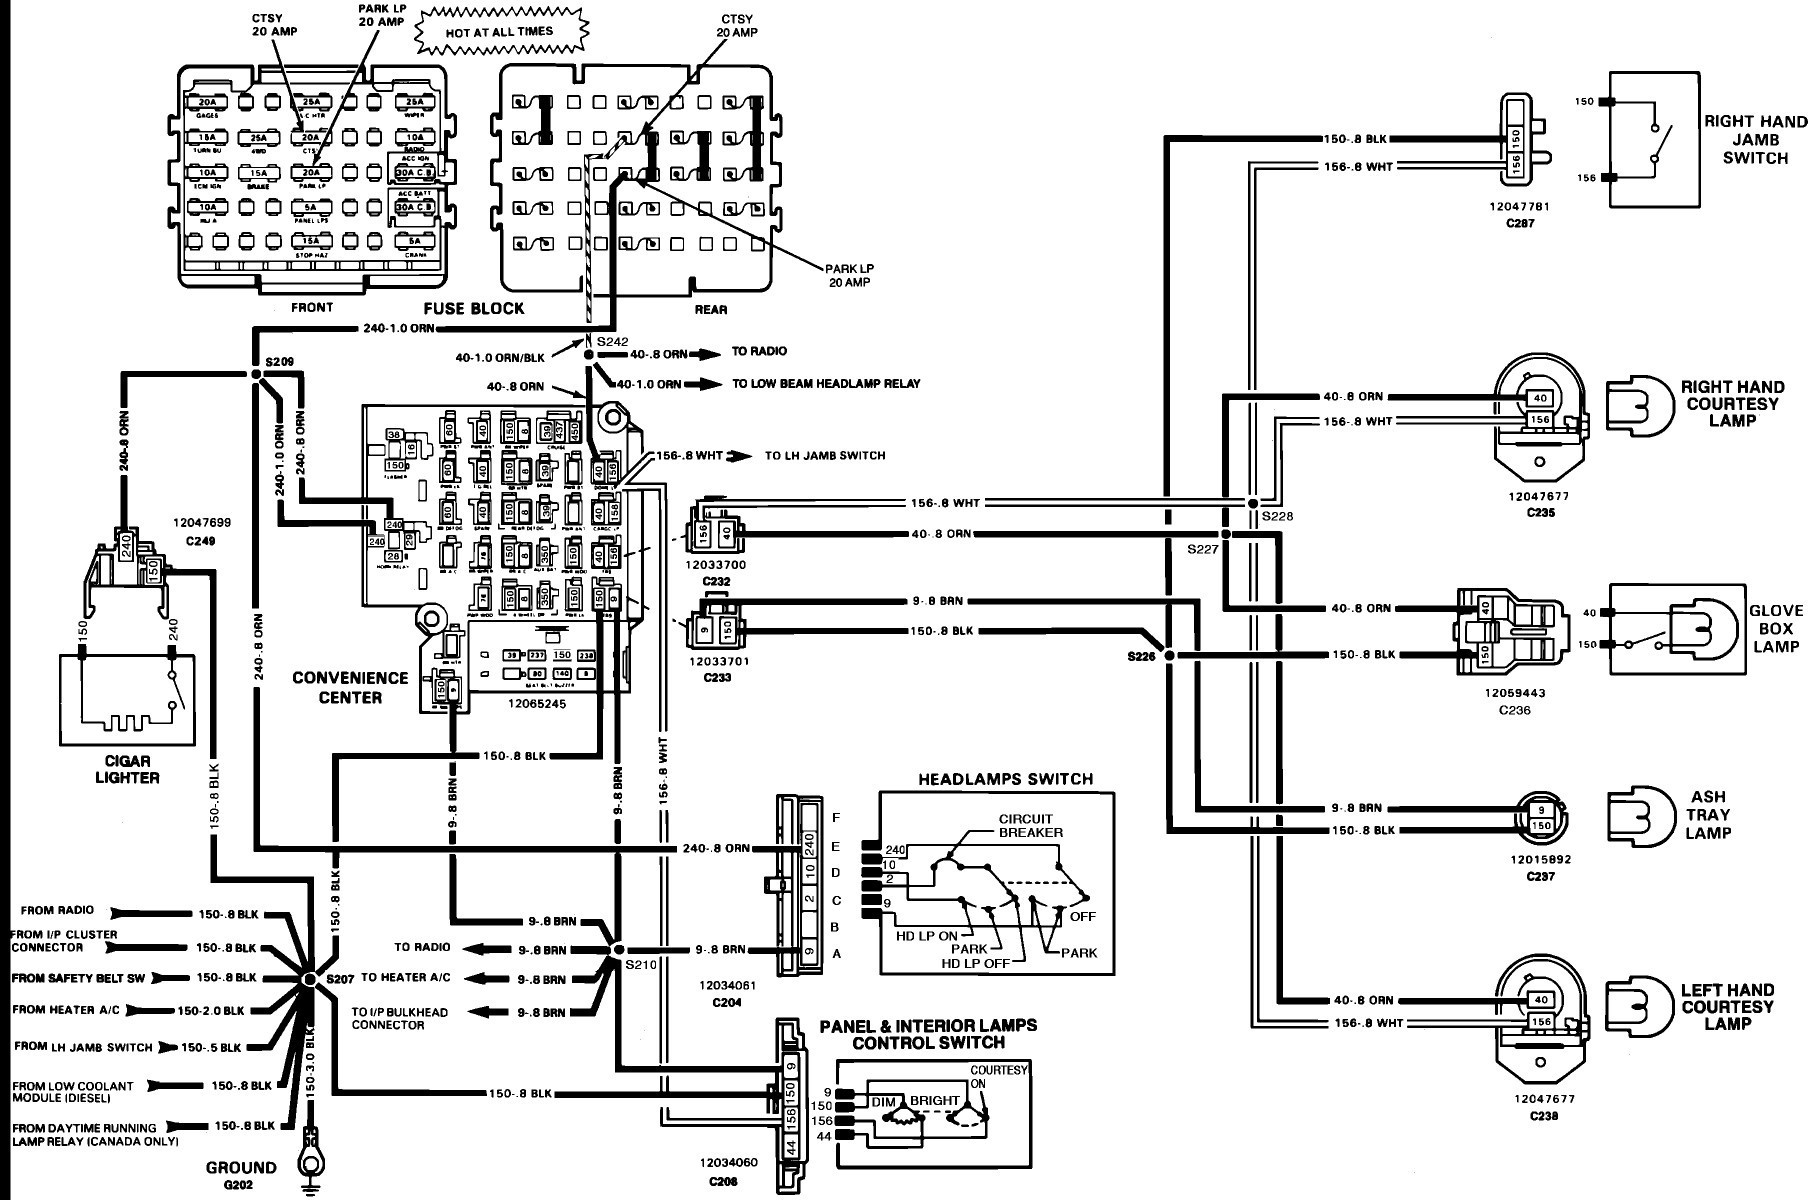 2000 s10 wiring diagram pdf